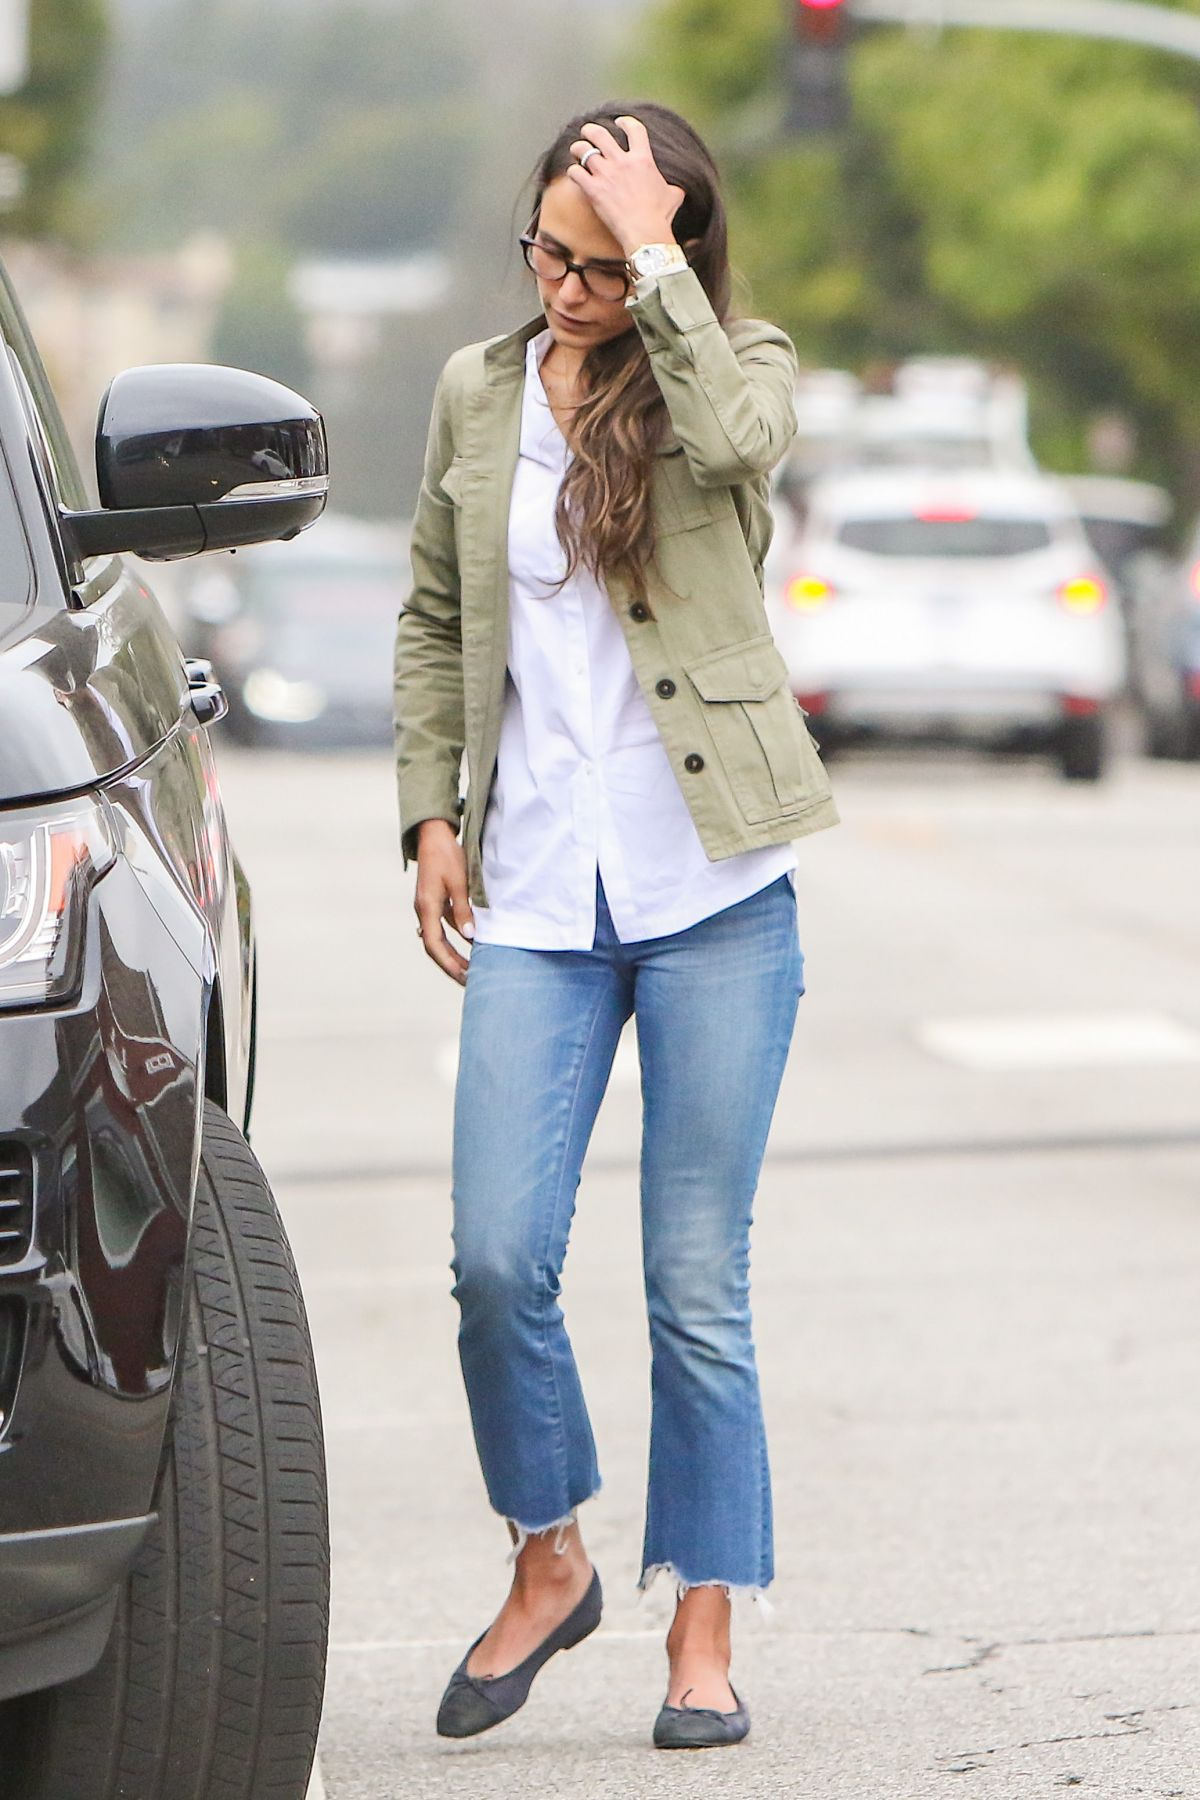 JORDANA BREWSTER in Jeans Out in Los Angeles 05/10/2017